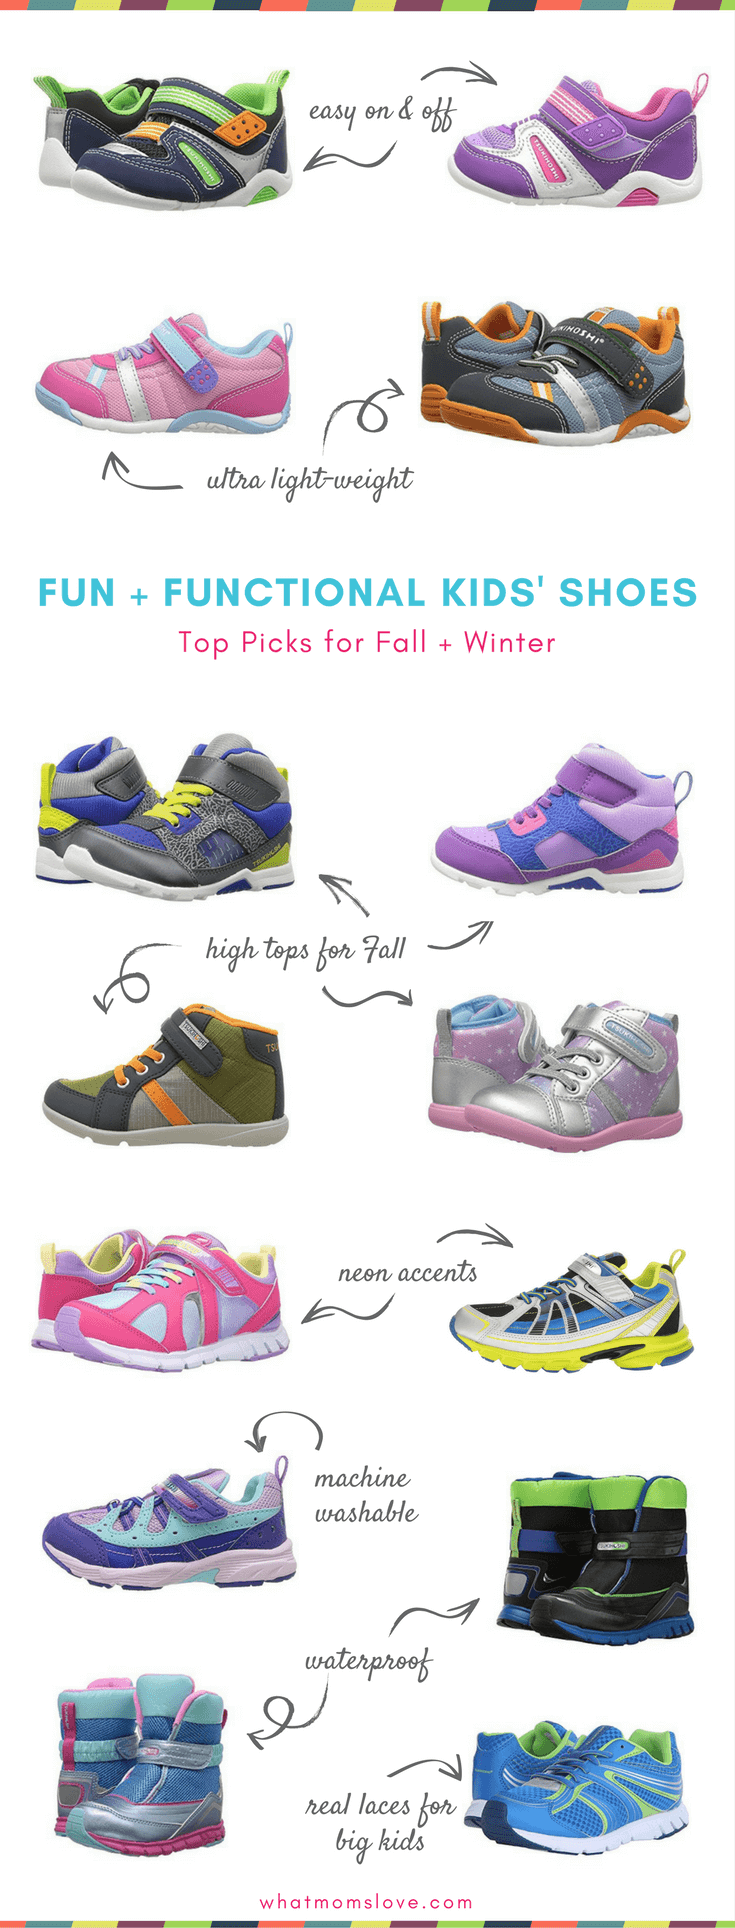 c54fbad06cea07 Best Kids Shoes for girls and boys